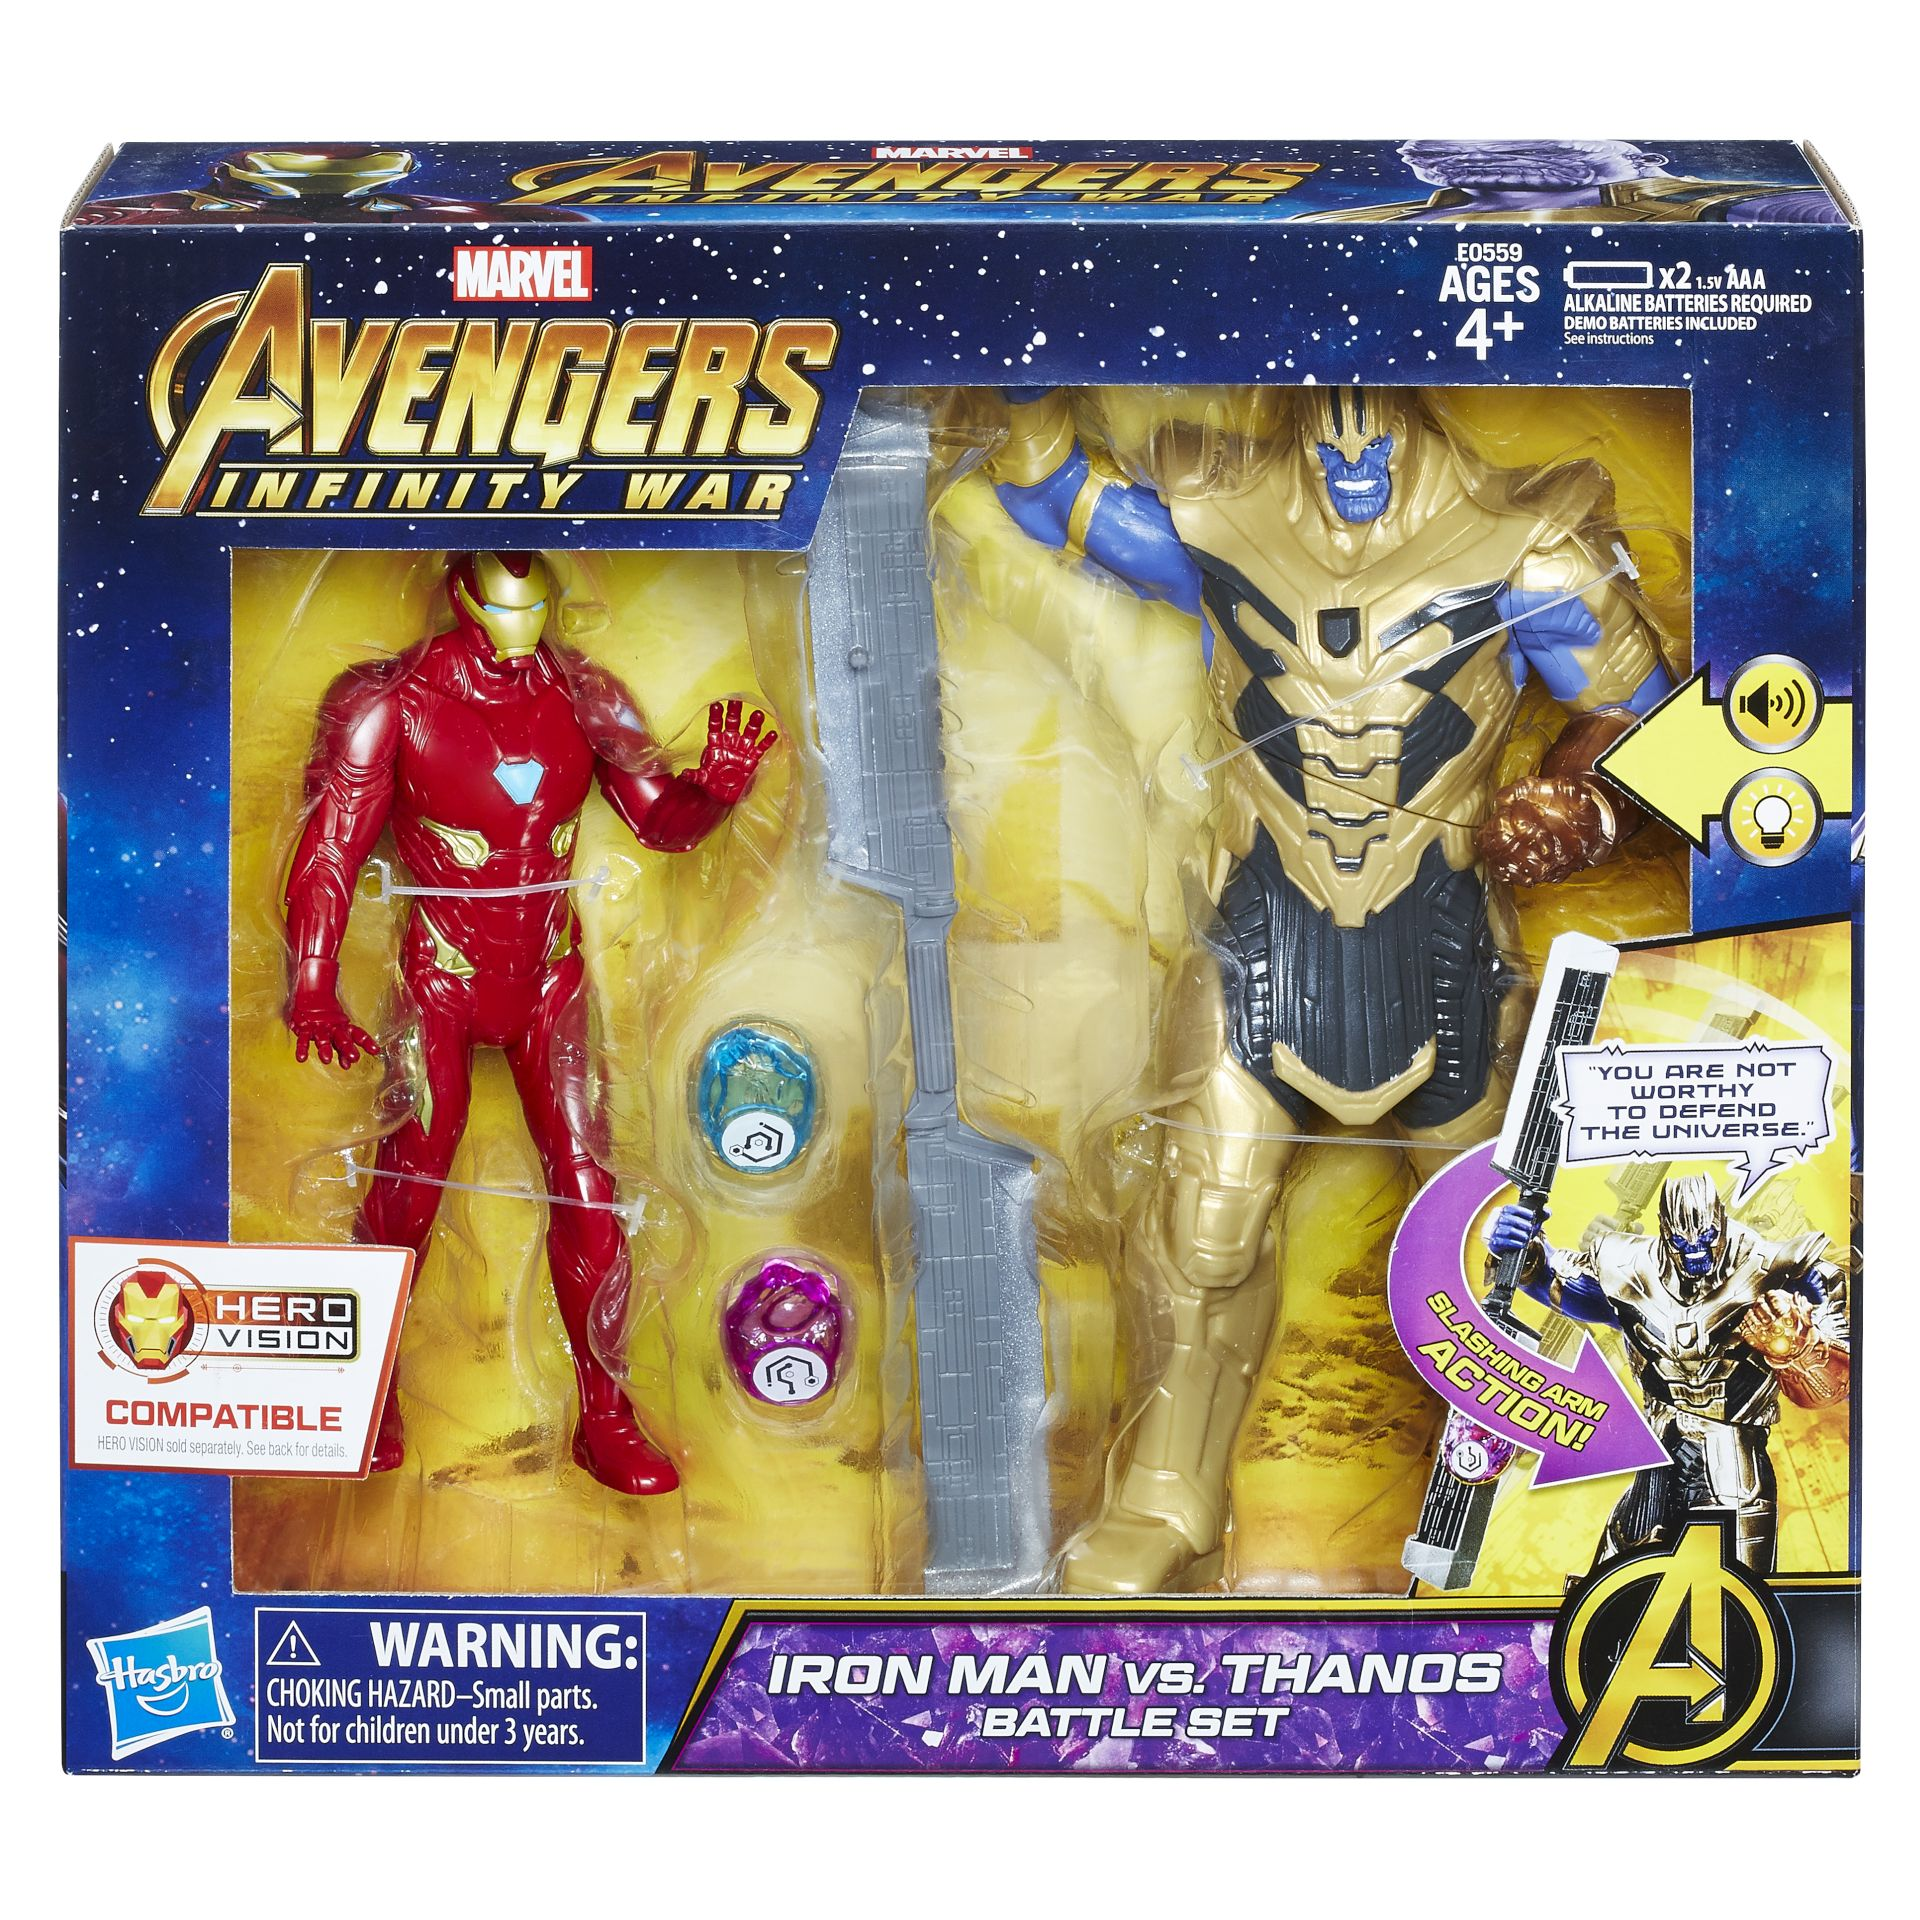 Toys From Hasbro : Hasbro marvel avengers infinity war product round up